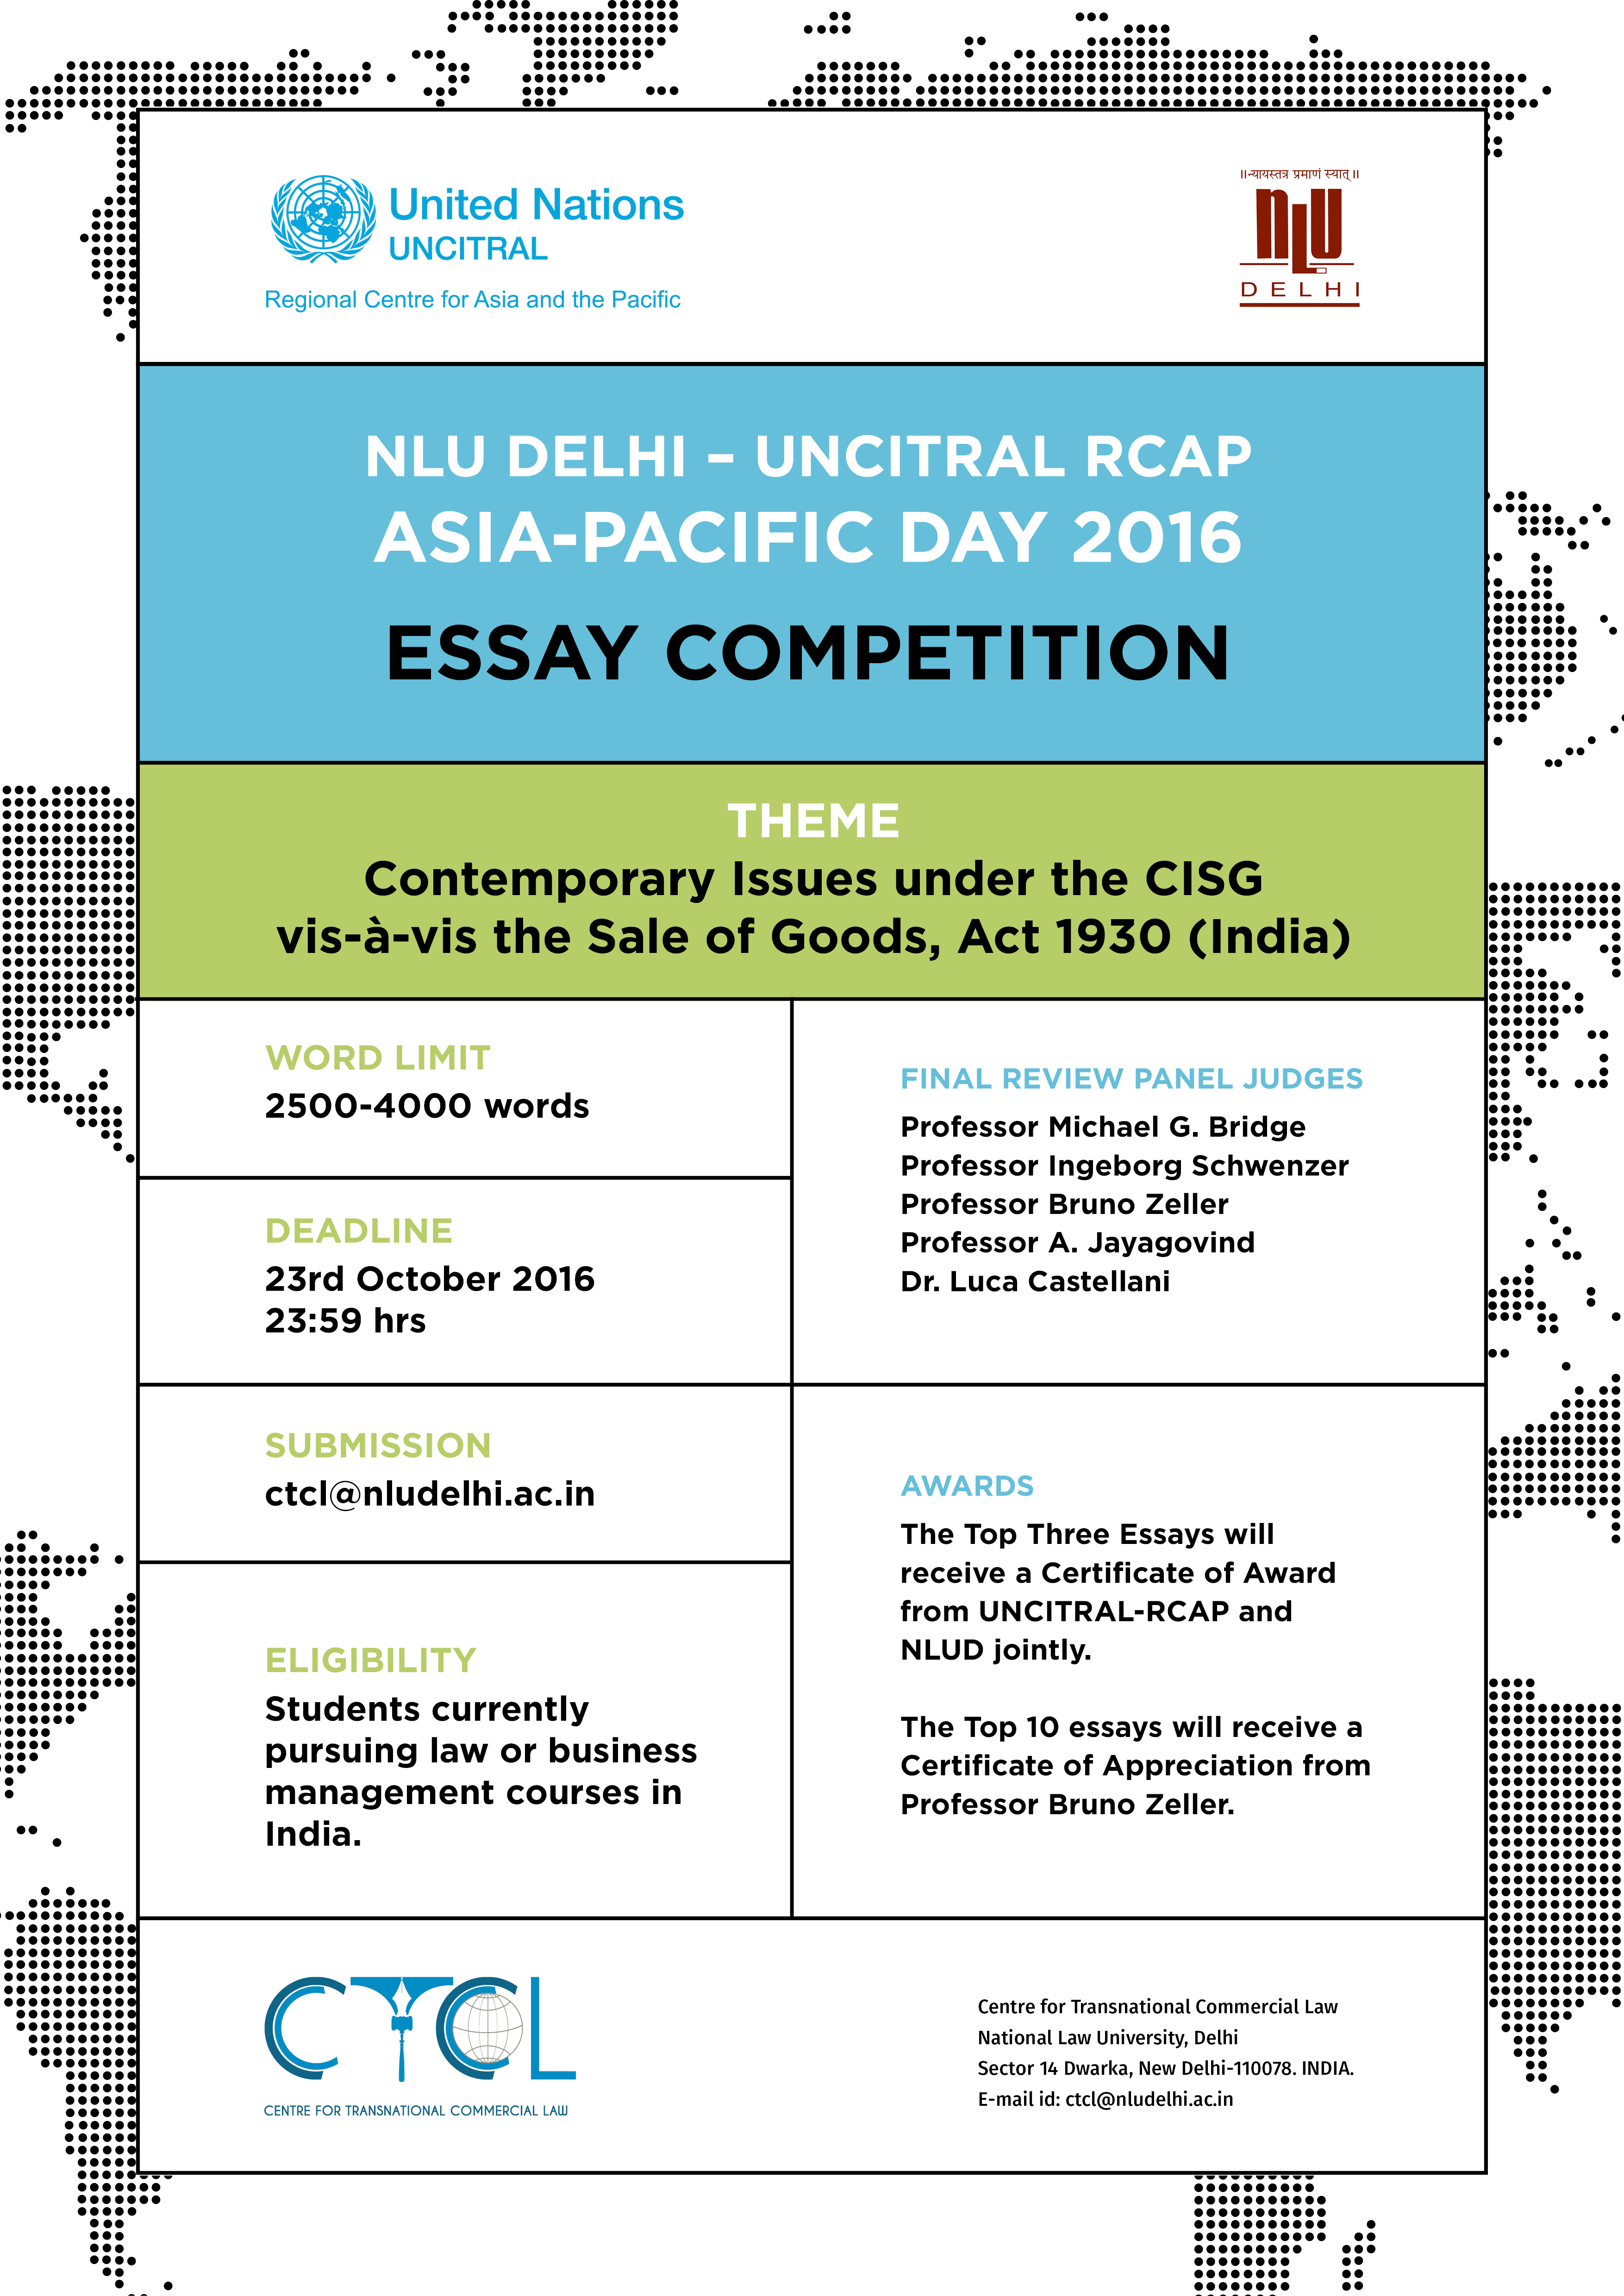 International Humanitarian Law Essay Competition